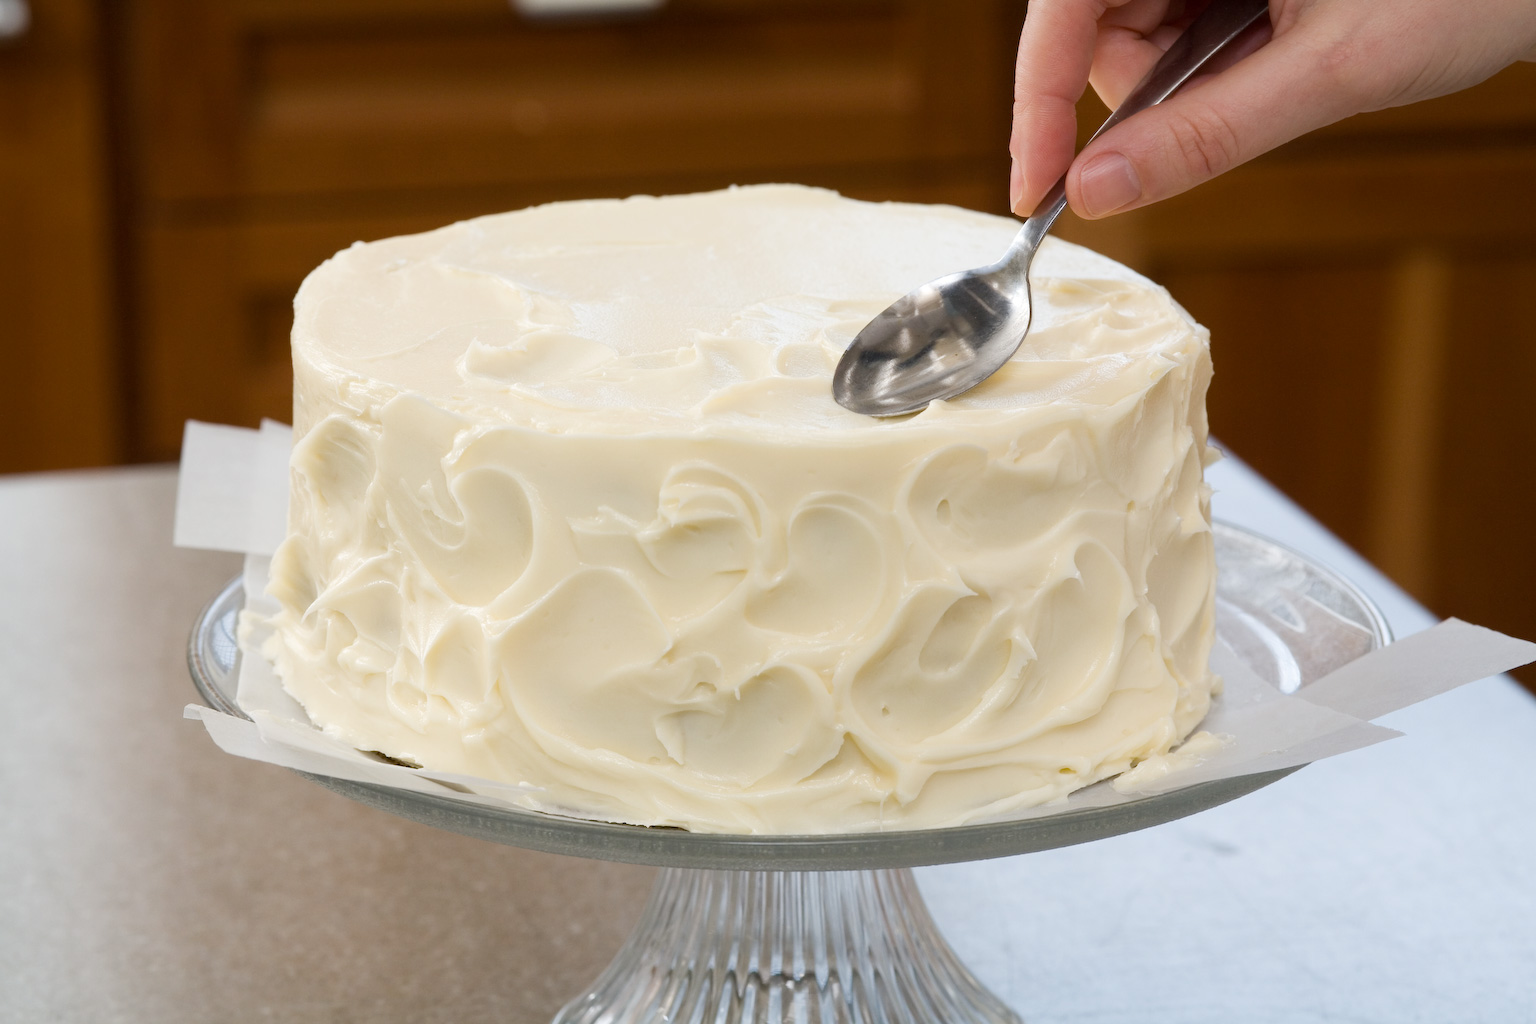 How Decorate Cake At Home : Easy Bake Games: Secrets to Decorating Layer Cakes